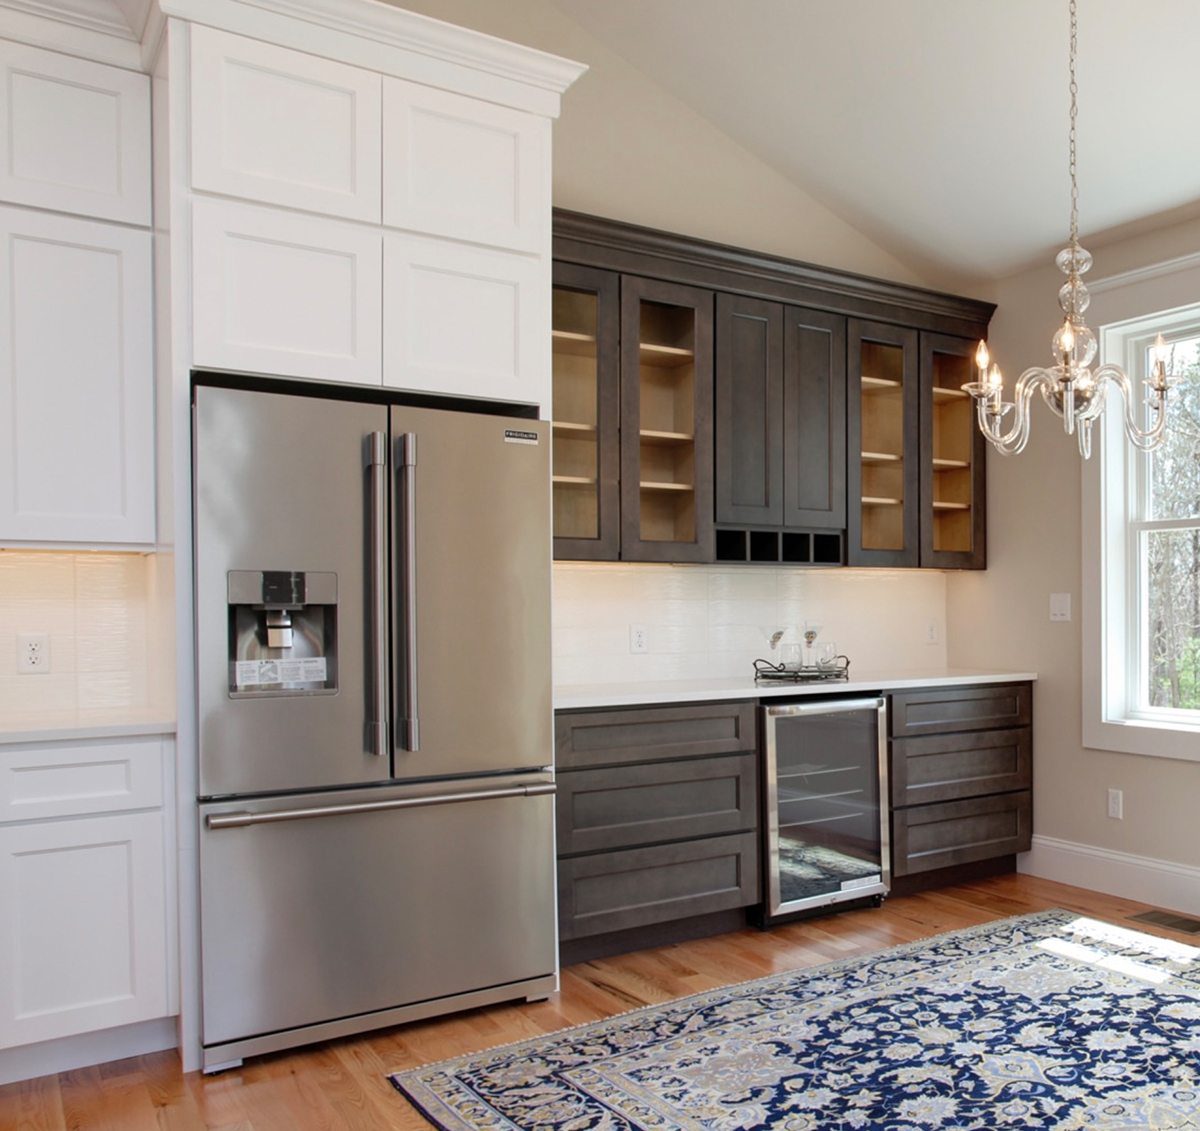 Large open kitchen with two toned cabinets.